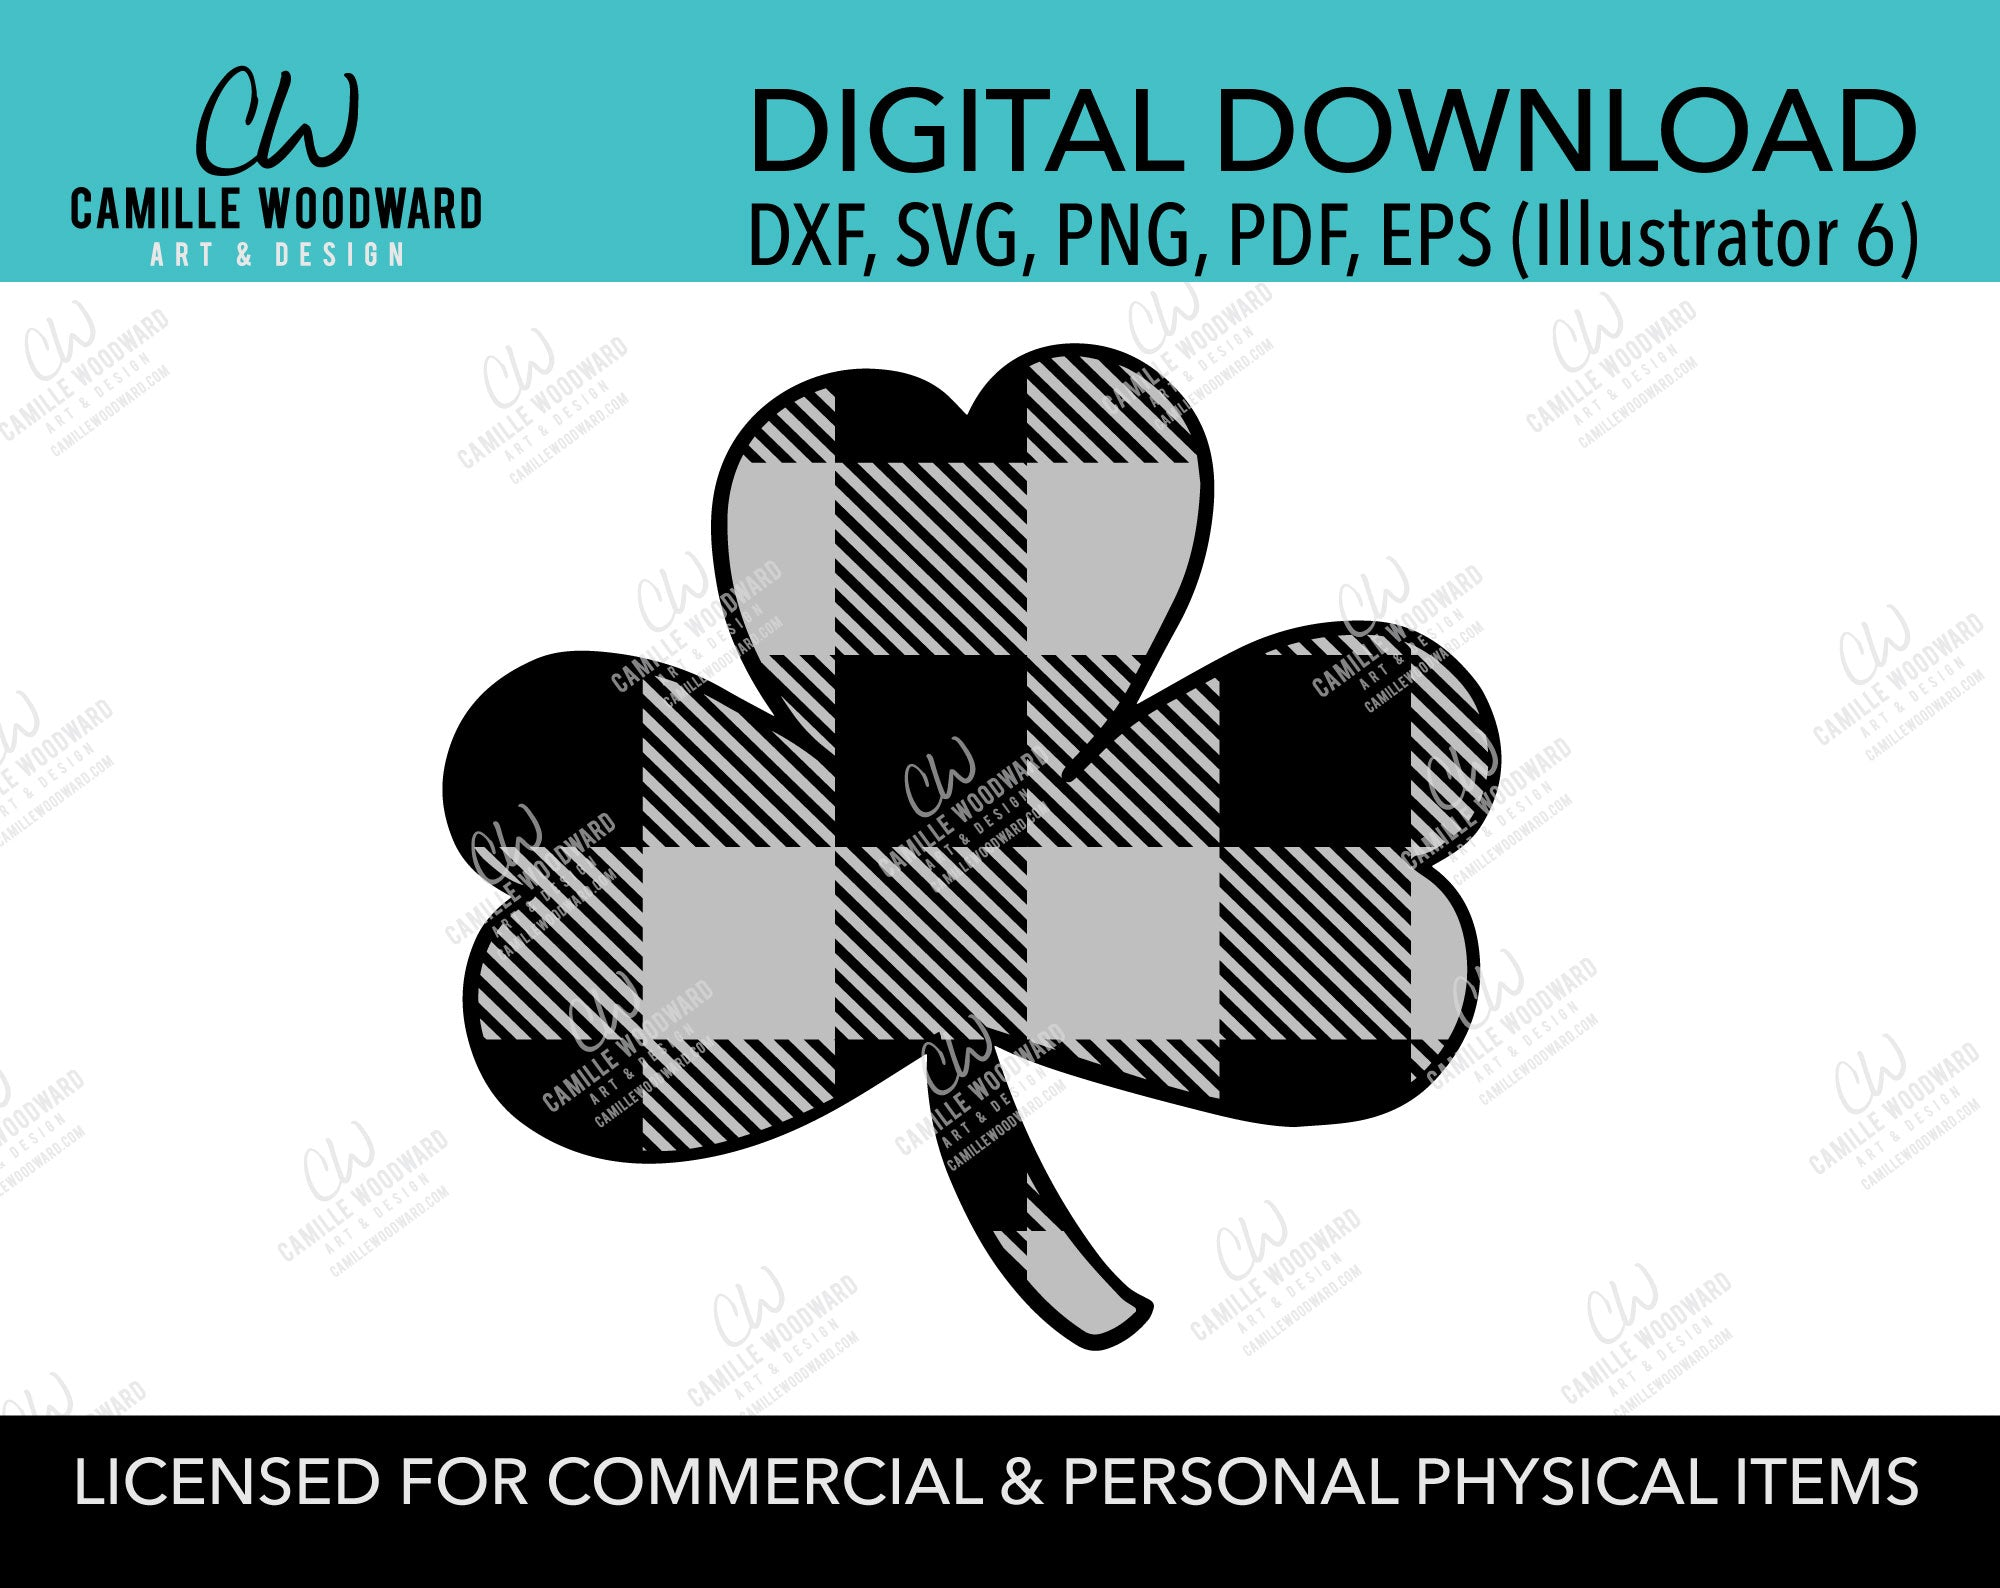 St Patrick's Day SVG, Buffalo Plaid Shamrock SVG, Cricut, Gray Lucky Clover - Sublimation Digital Download Transparent